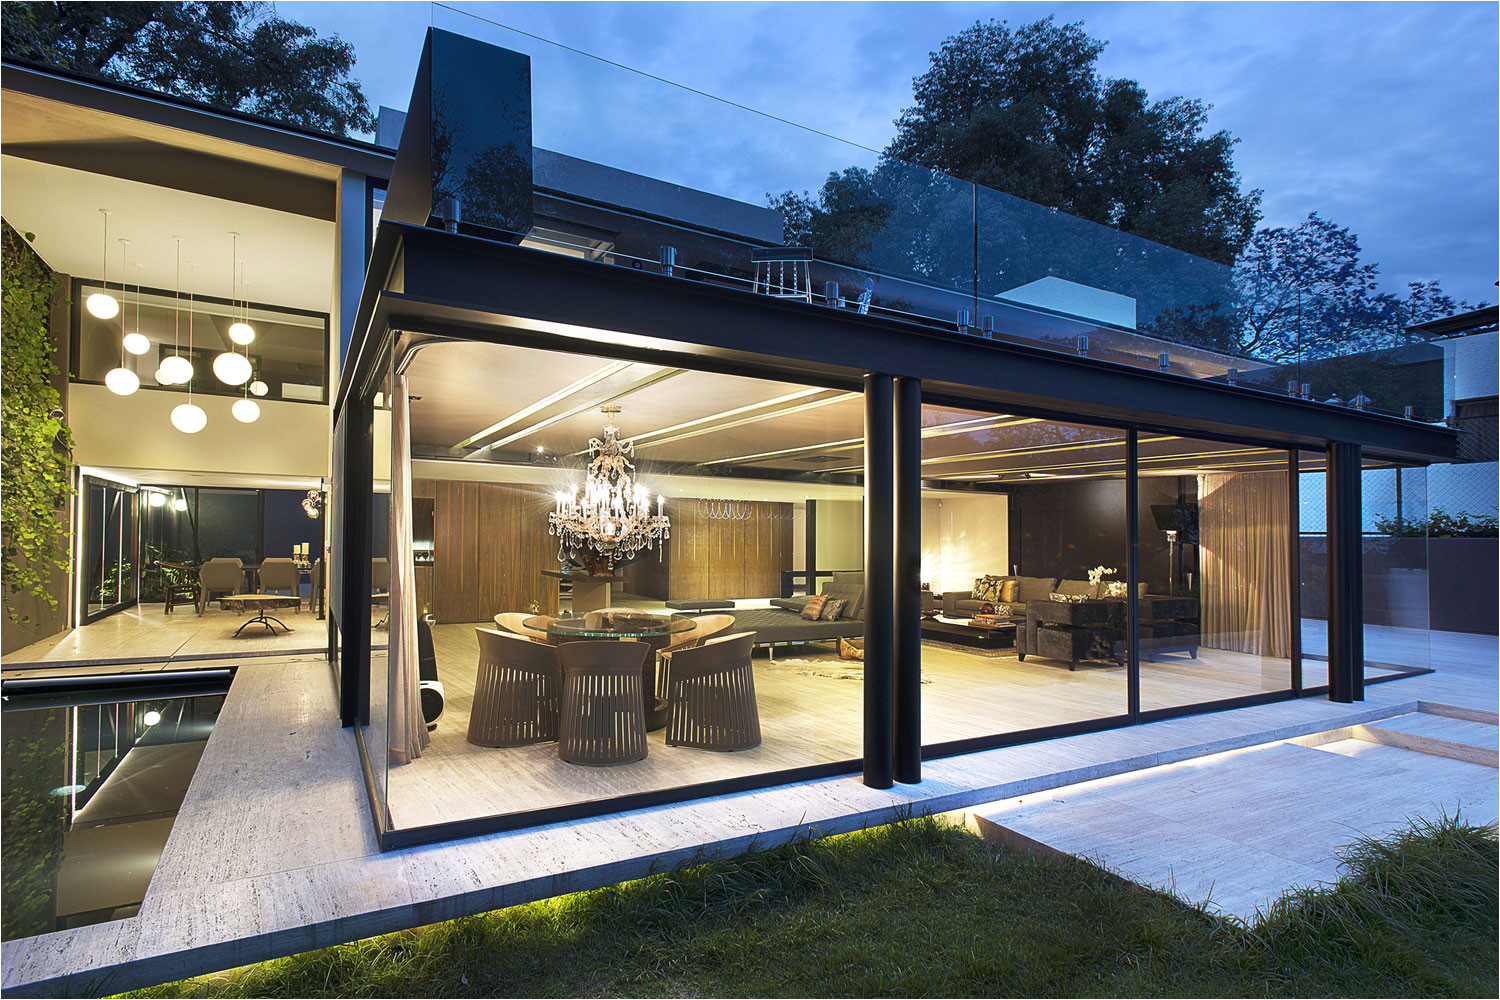 Amazing idea for concrete, steel and glass house built